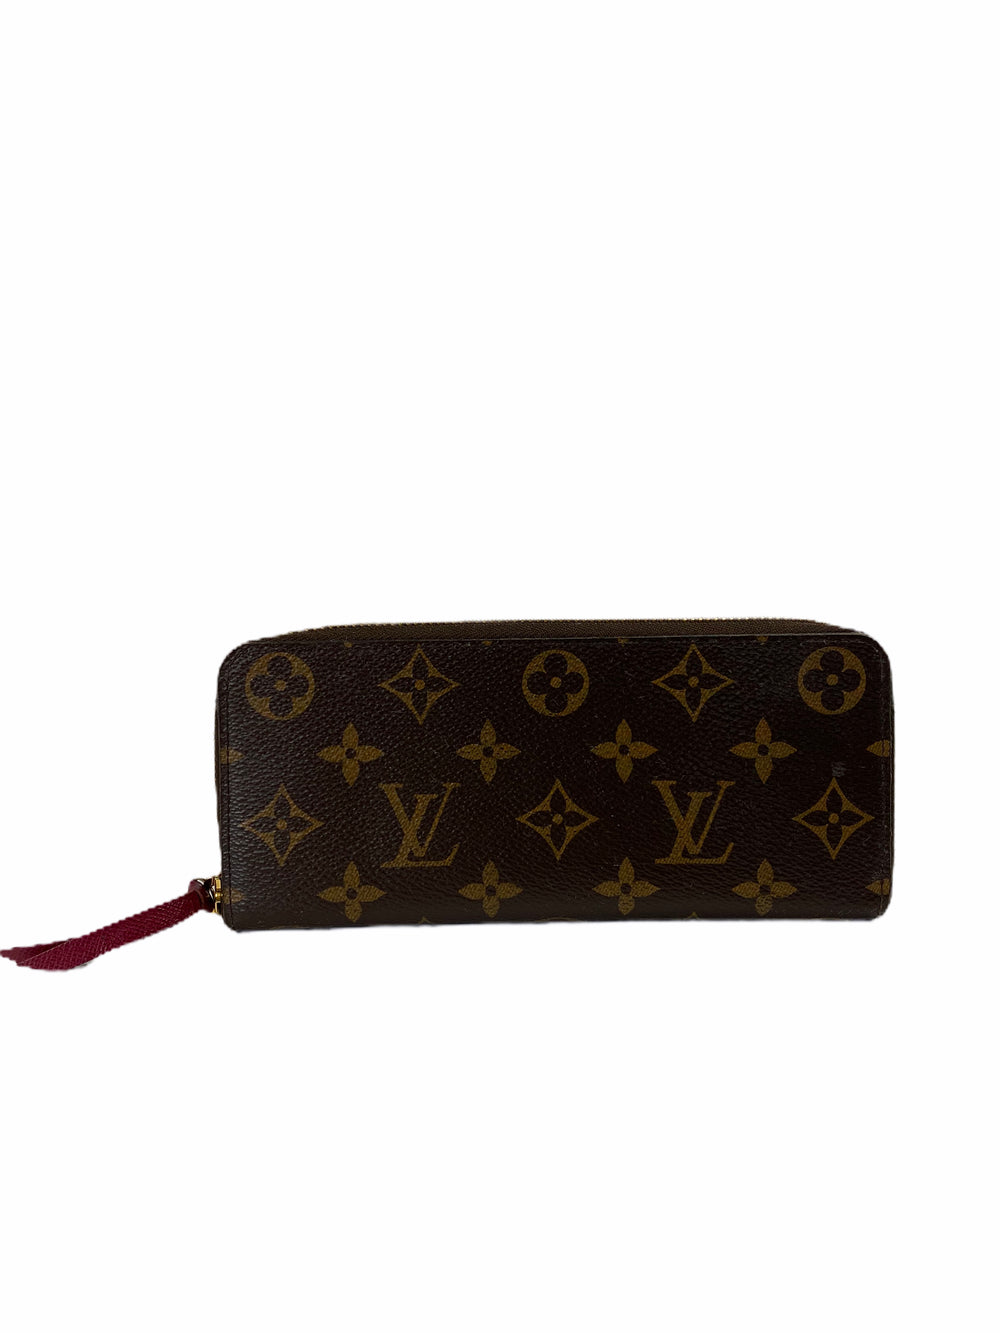 Louis Vuitton Monogram Canvas Purse - As Seen on Instagram 09/08/2020